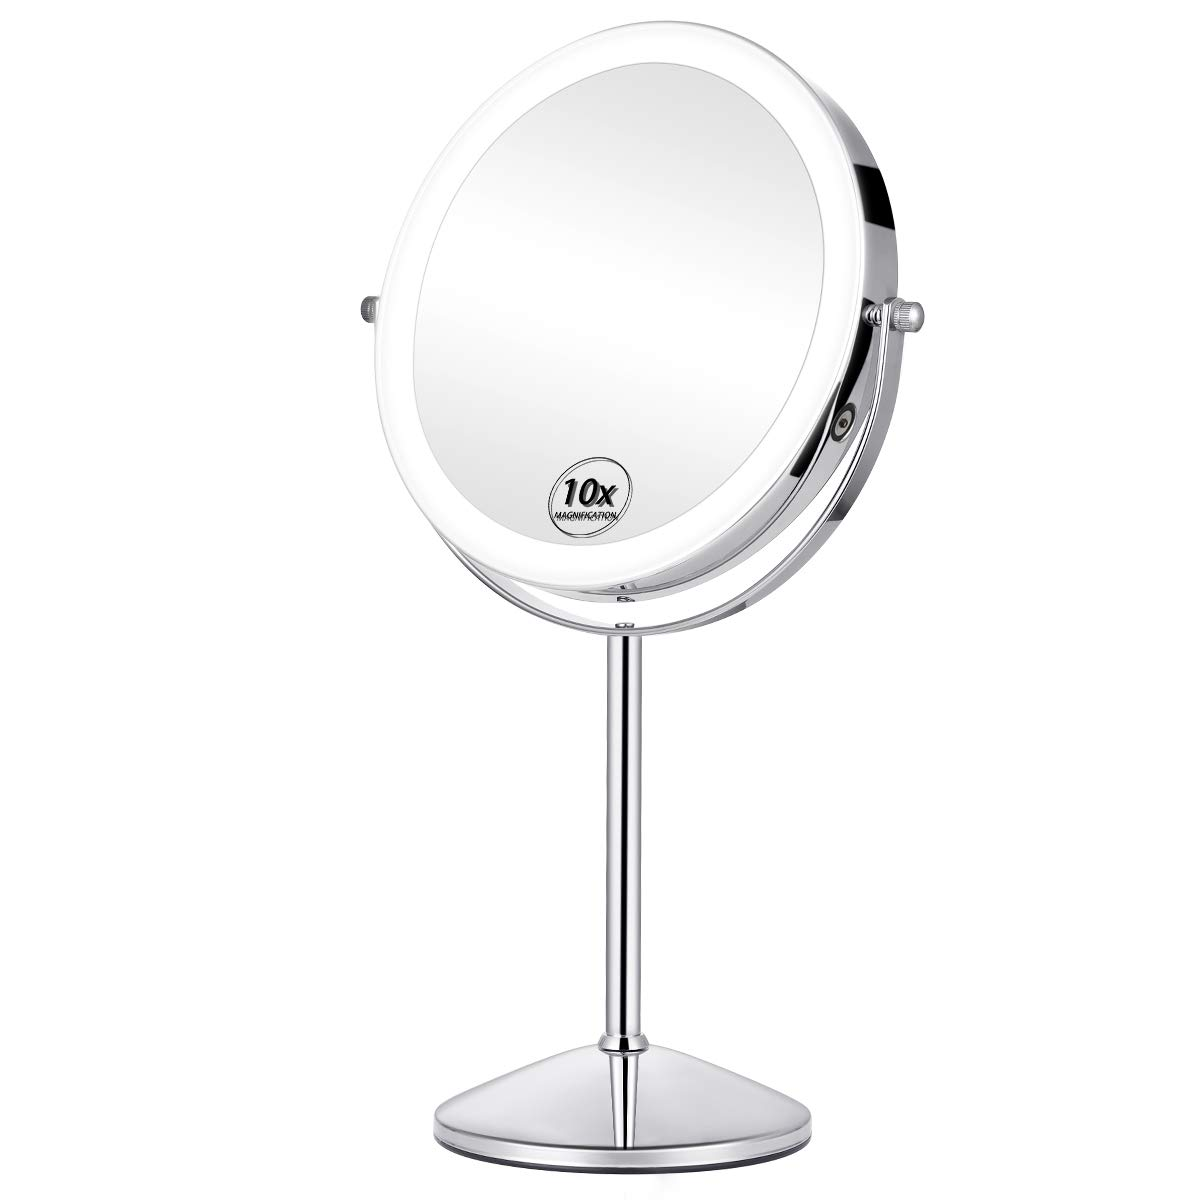 KEDSUM Rechargeable 8 Inch 1X/10X Lighted Magnifying Makeup Mirror with 3 Lighting Modes, Double Sided Magnification Vanity Mirror with Lights, Cordless Tabletop Mirror, Touch Button